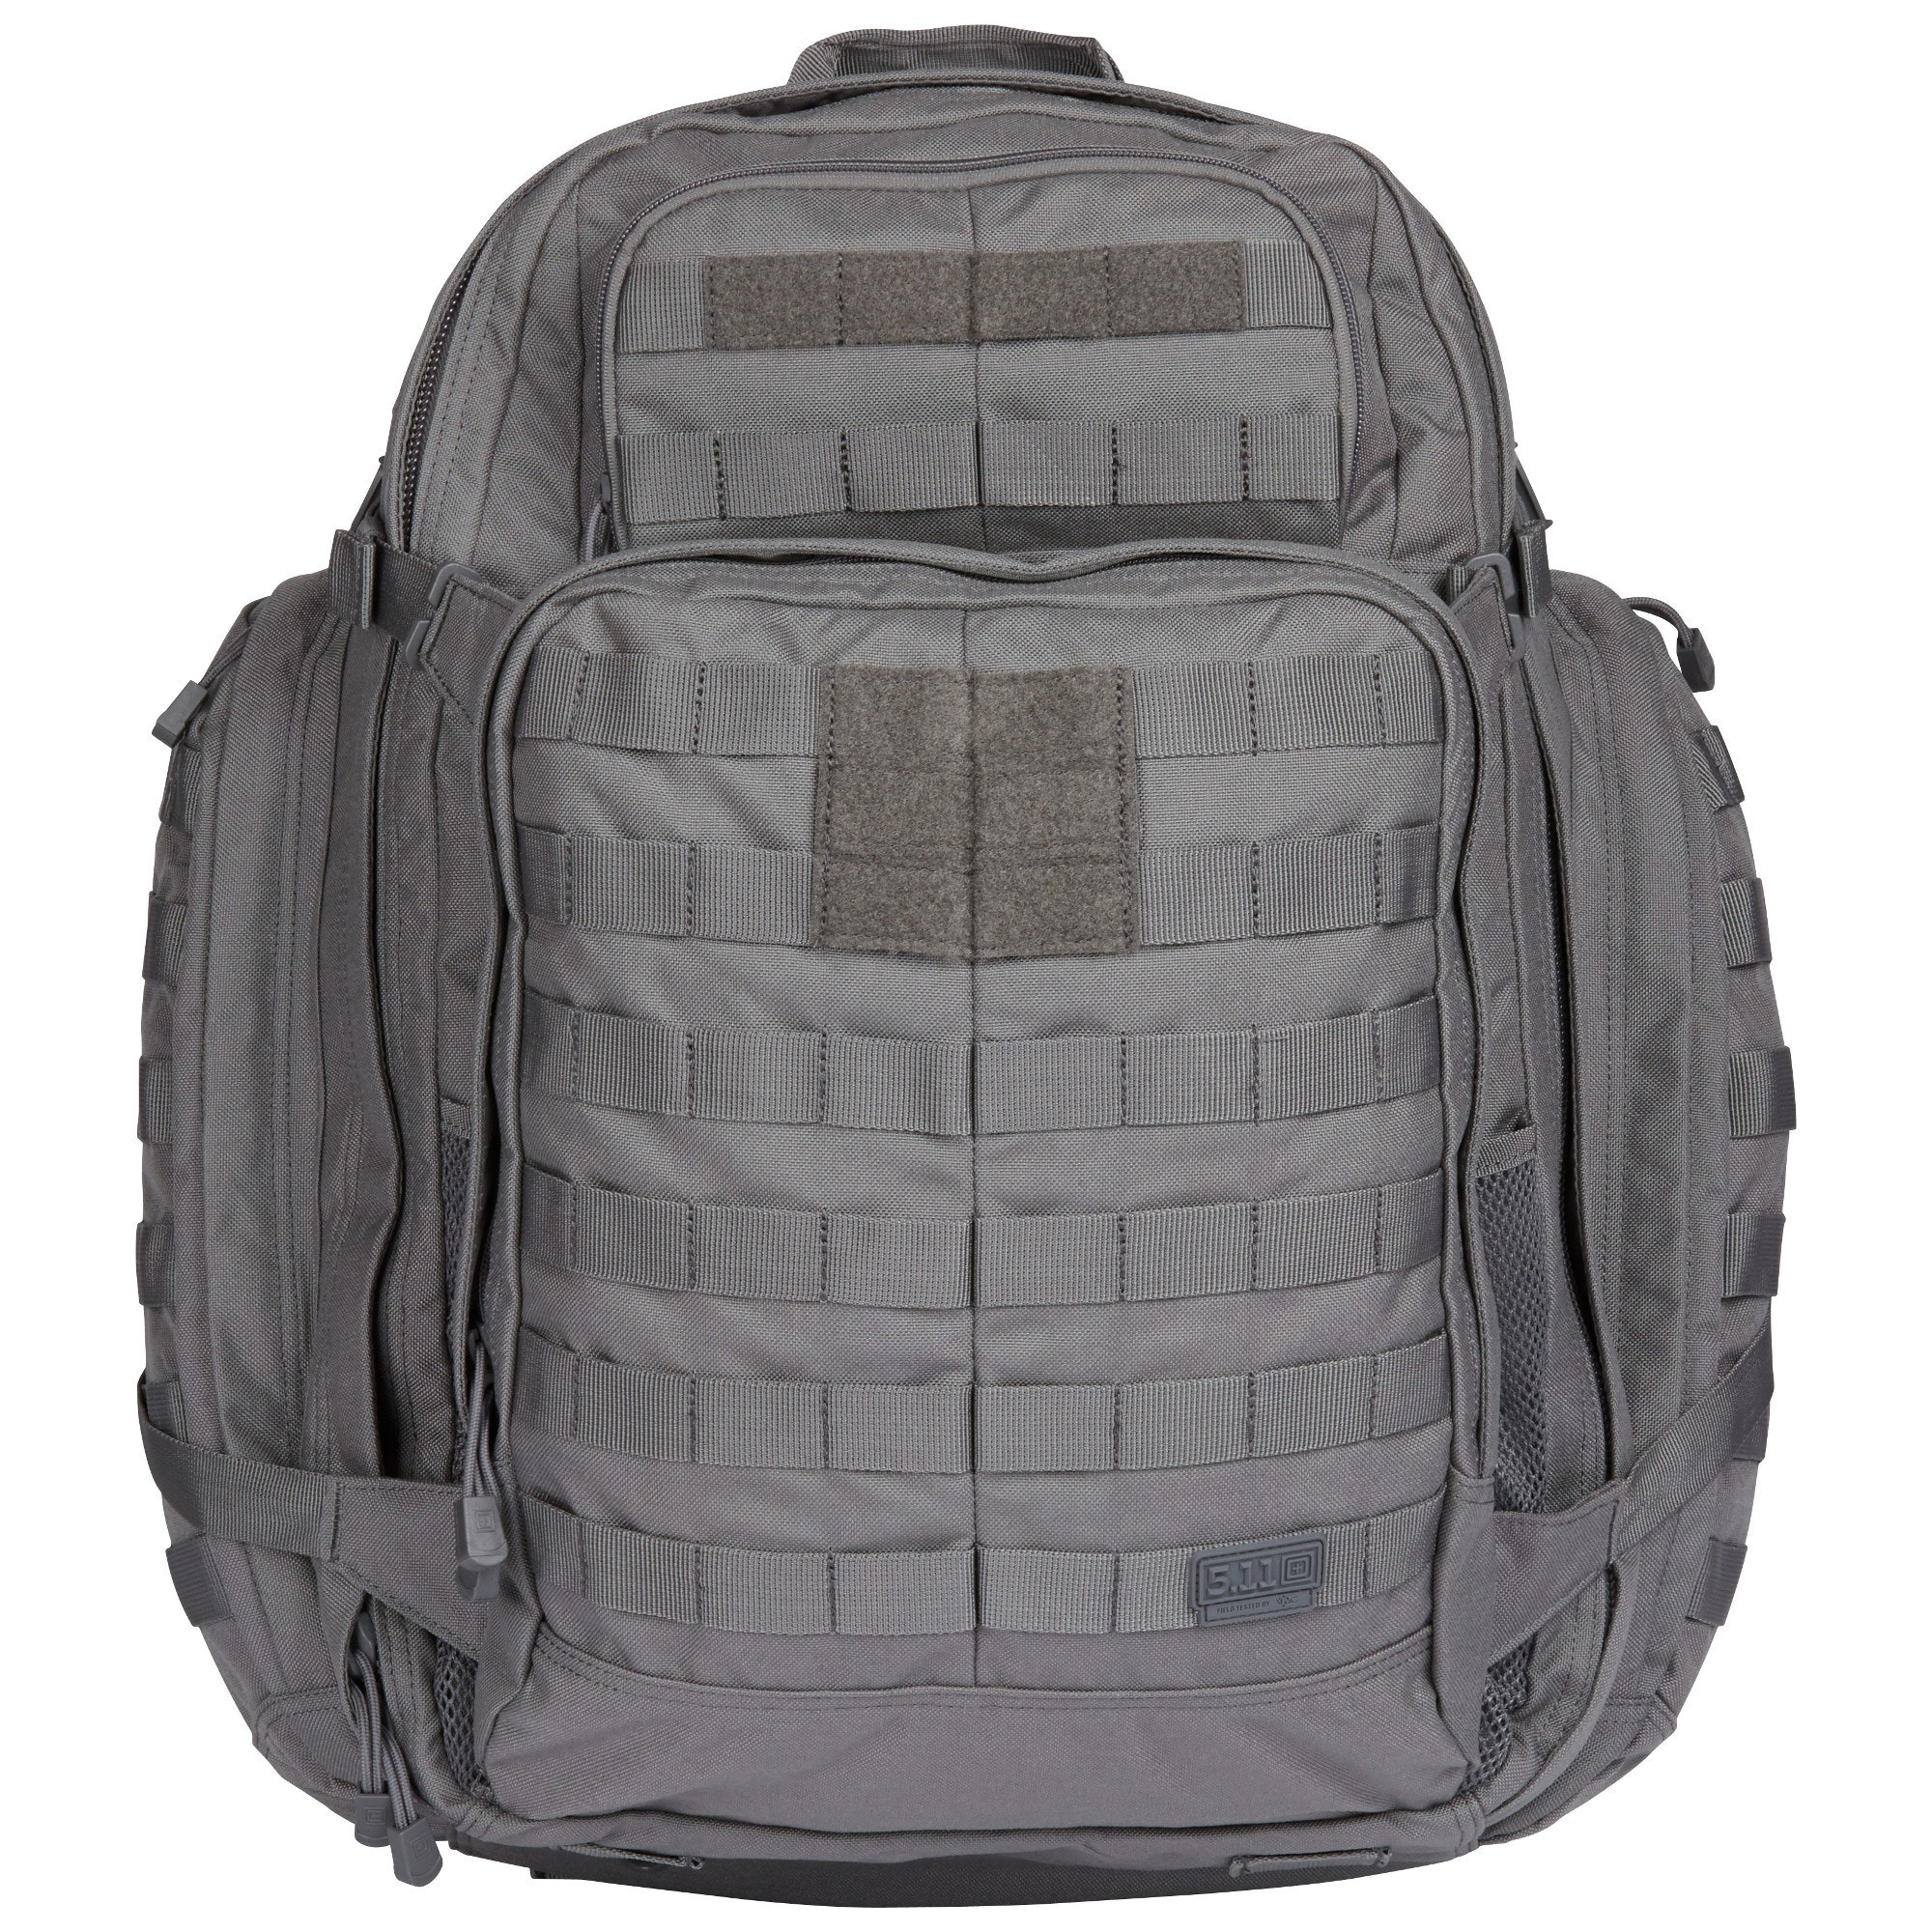 Bug Out Bag RUSH 72 Hour Backpack | Official 5.11 Site